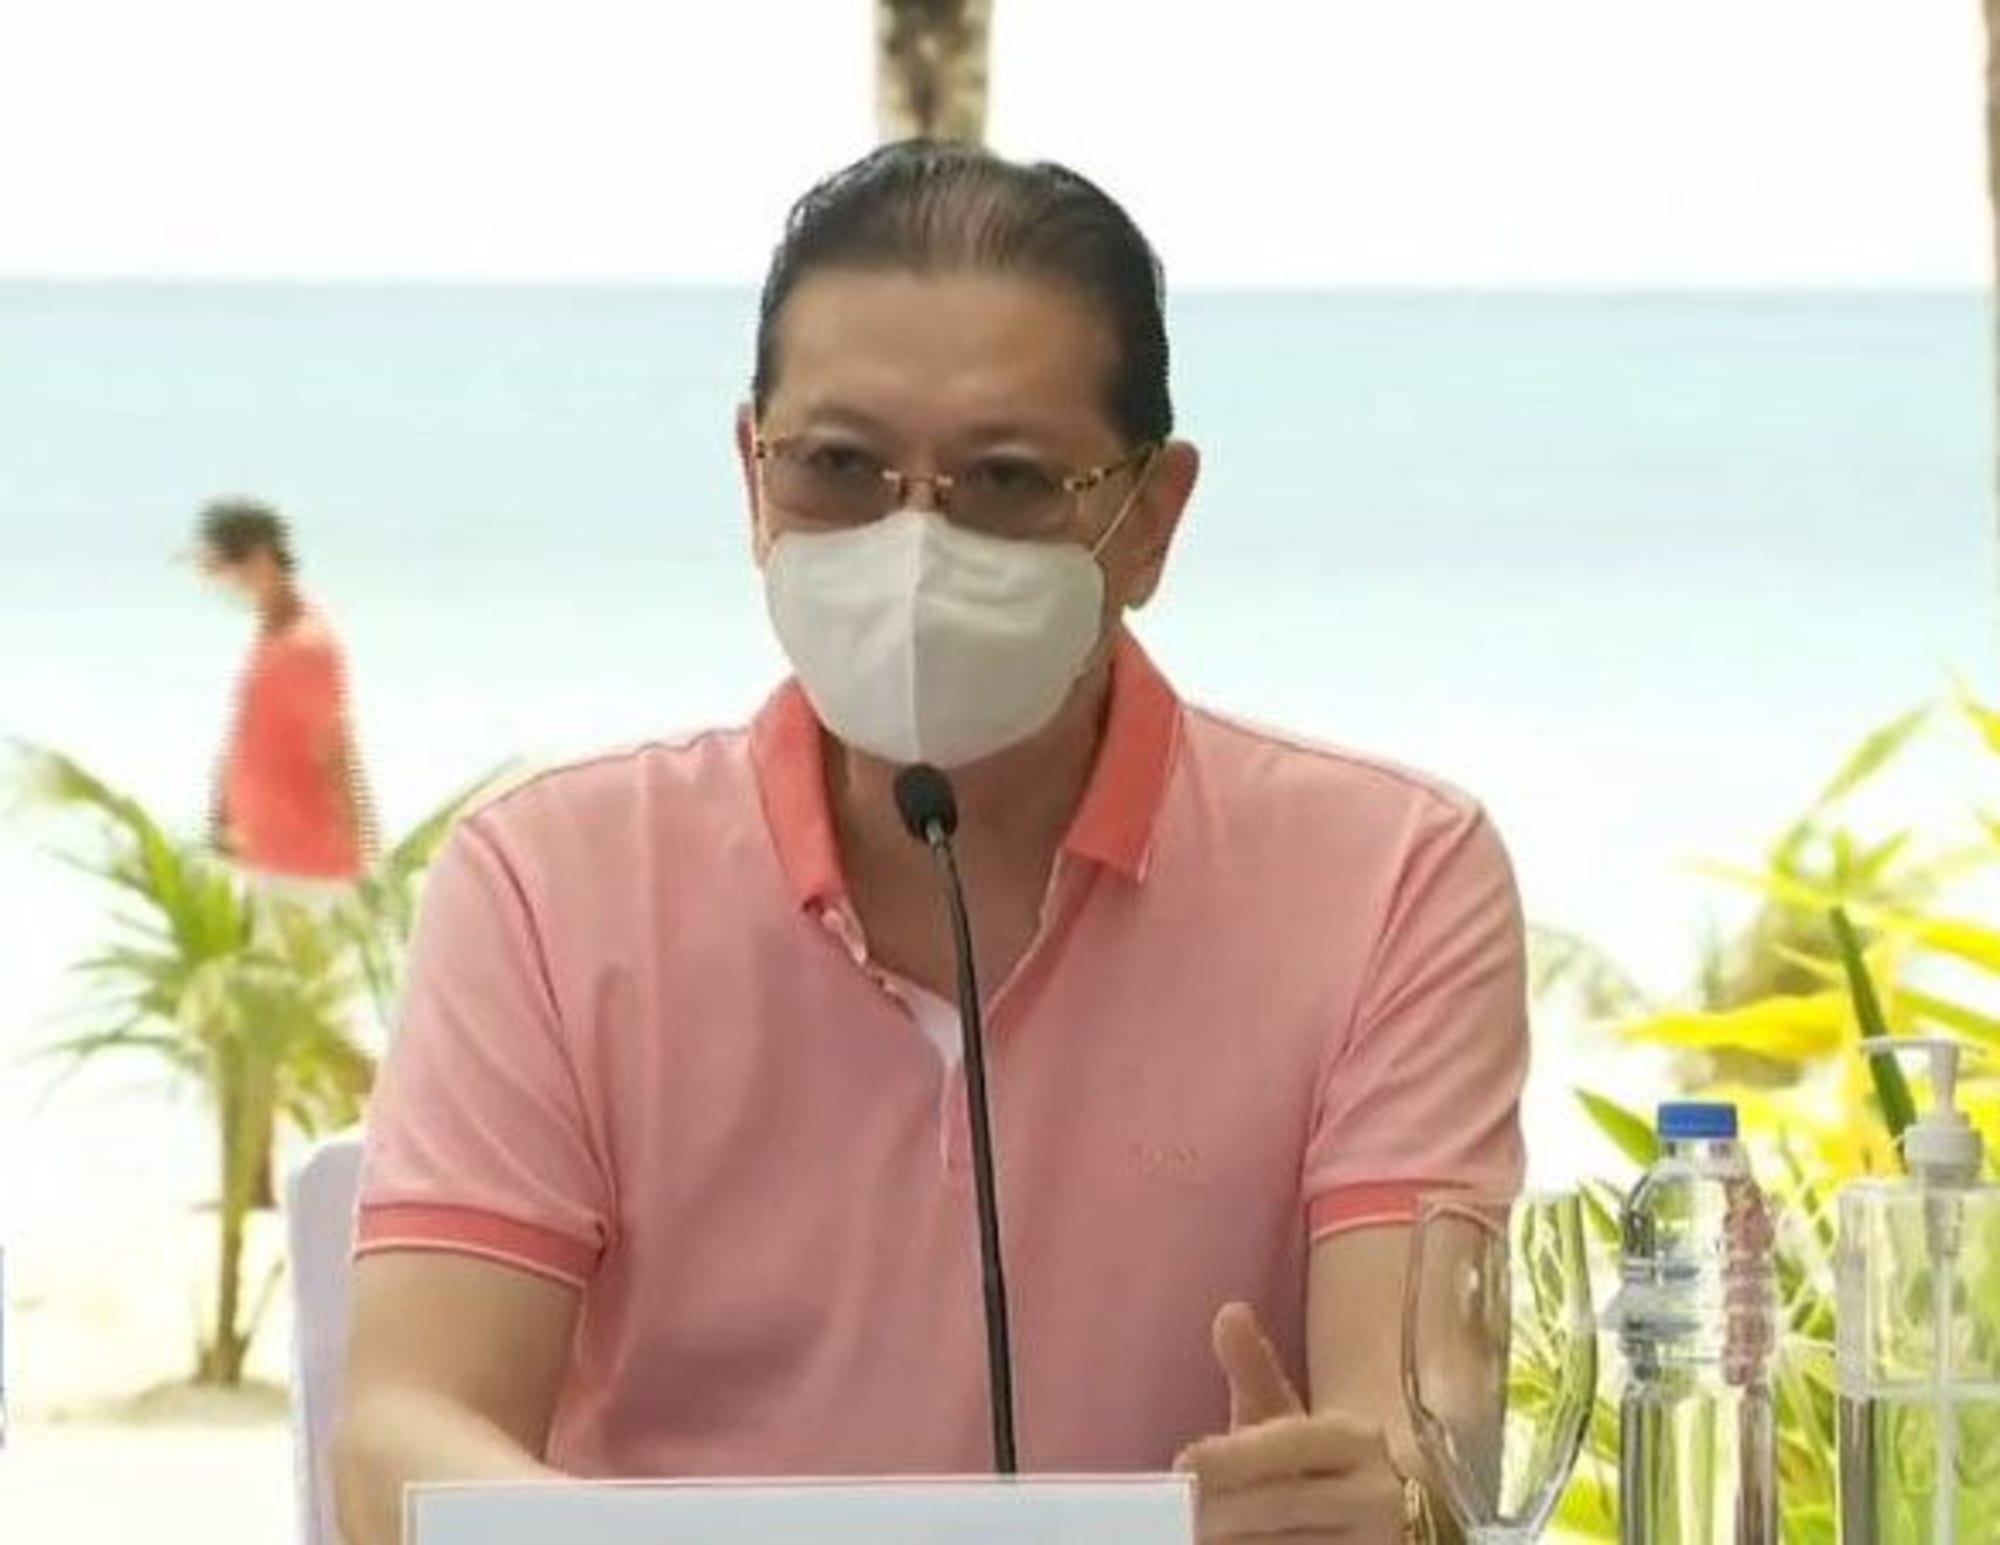 Boracay hotelier Henry Chusuey pushes for antigen test to unburden Boracay-bound tourists